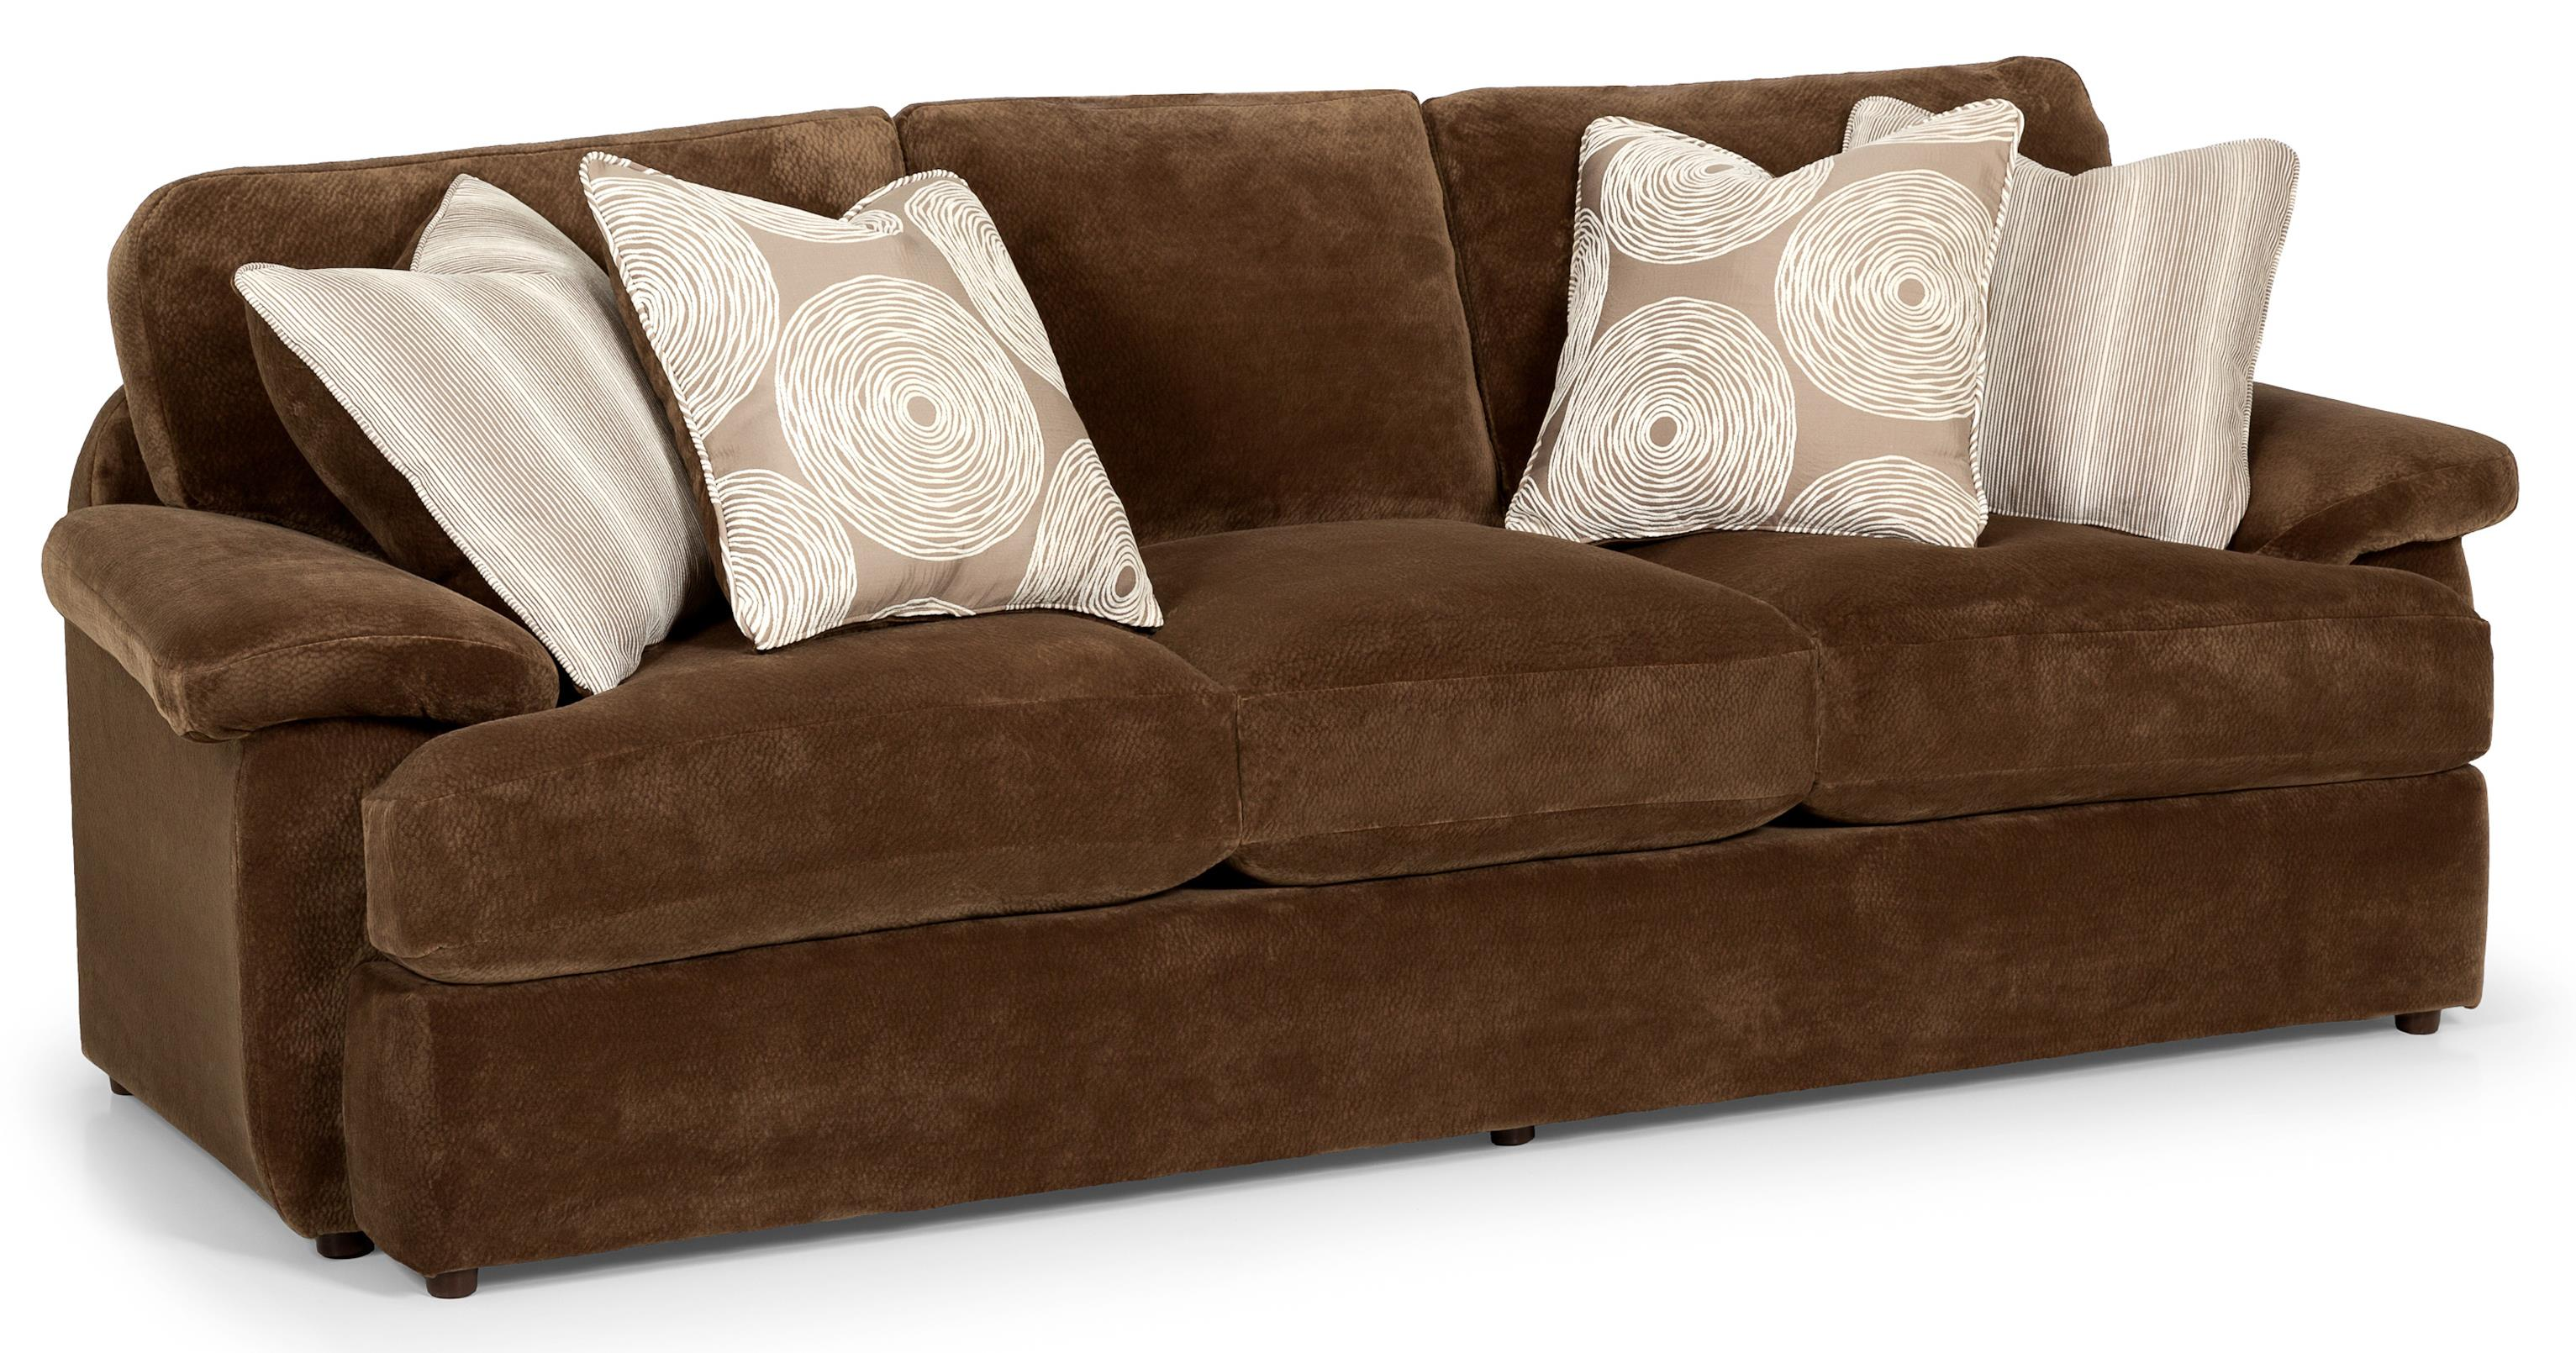 Stanton 186 3 Over 3 Sofa - Item Number 186-01  sc 1 st  Rifeu0027s Home Furniture : stanton 186 sectional - Sectionals, Sofas & Couches